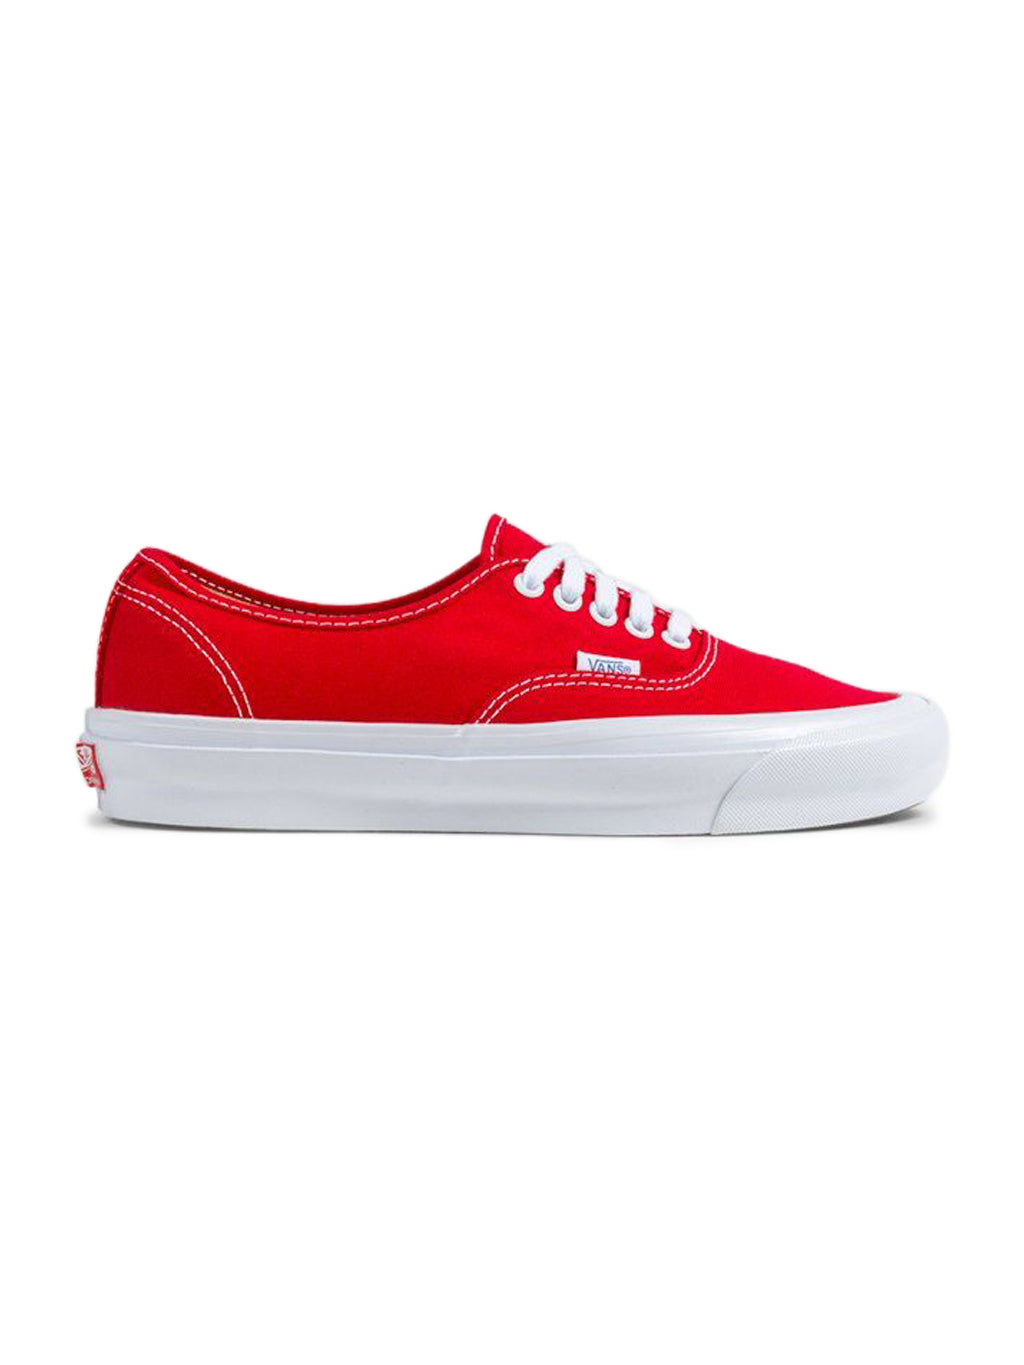 Red & White OG Authentic LX Shoes